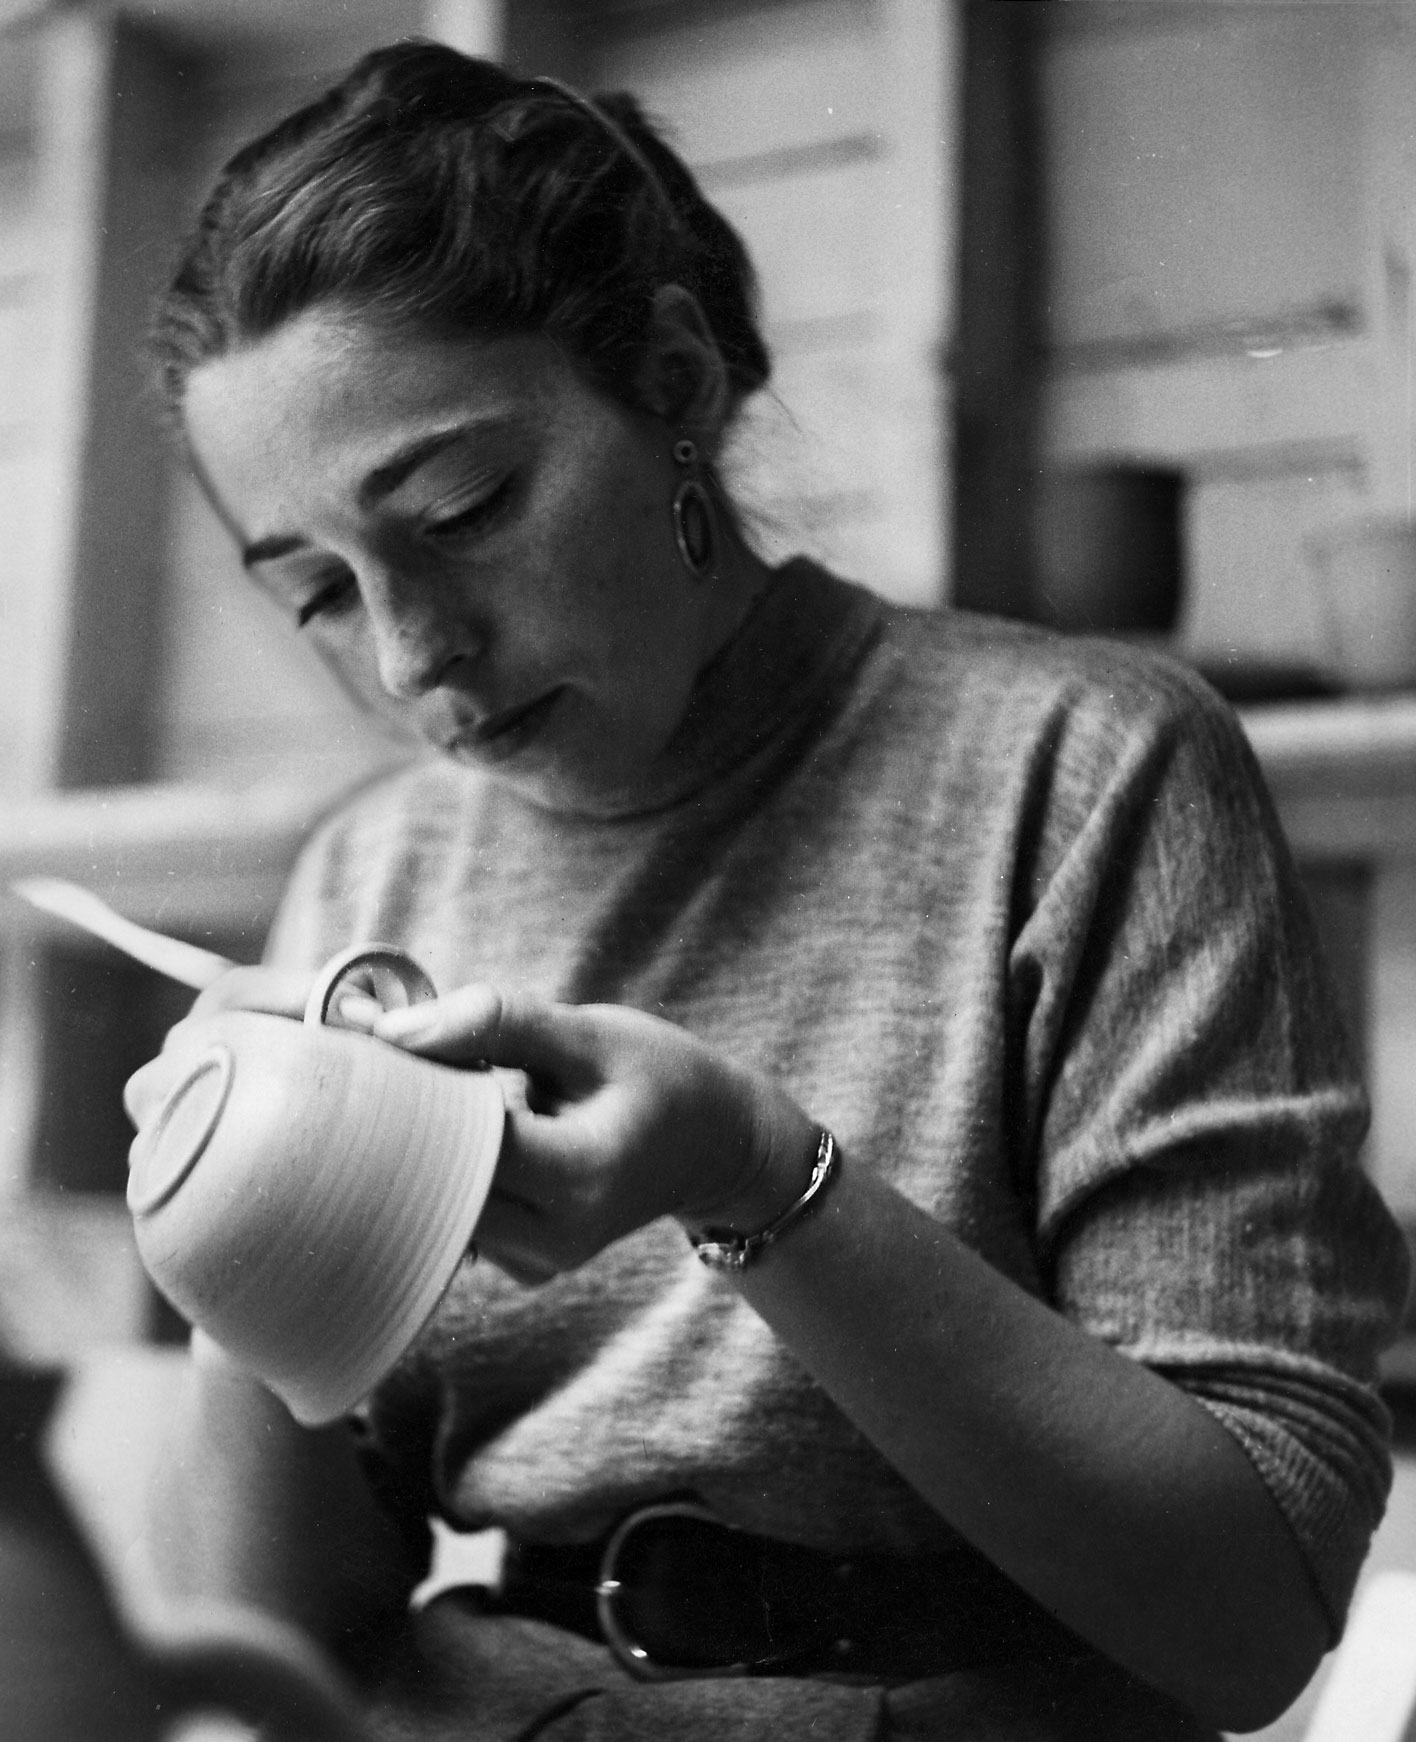 Ruth Rippon making a cup, 1952 at the California School of the Fine Arts. Photo credit: Zoe Lowenthal.